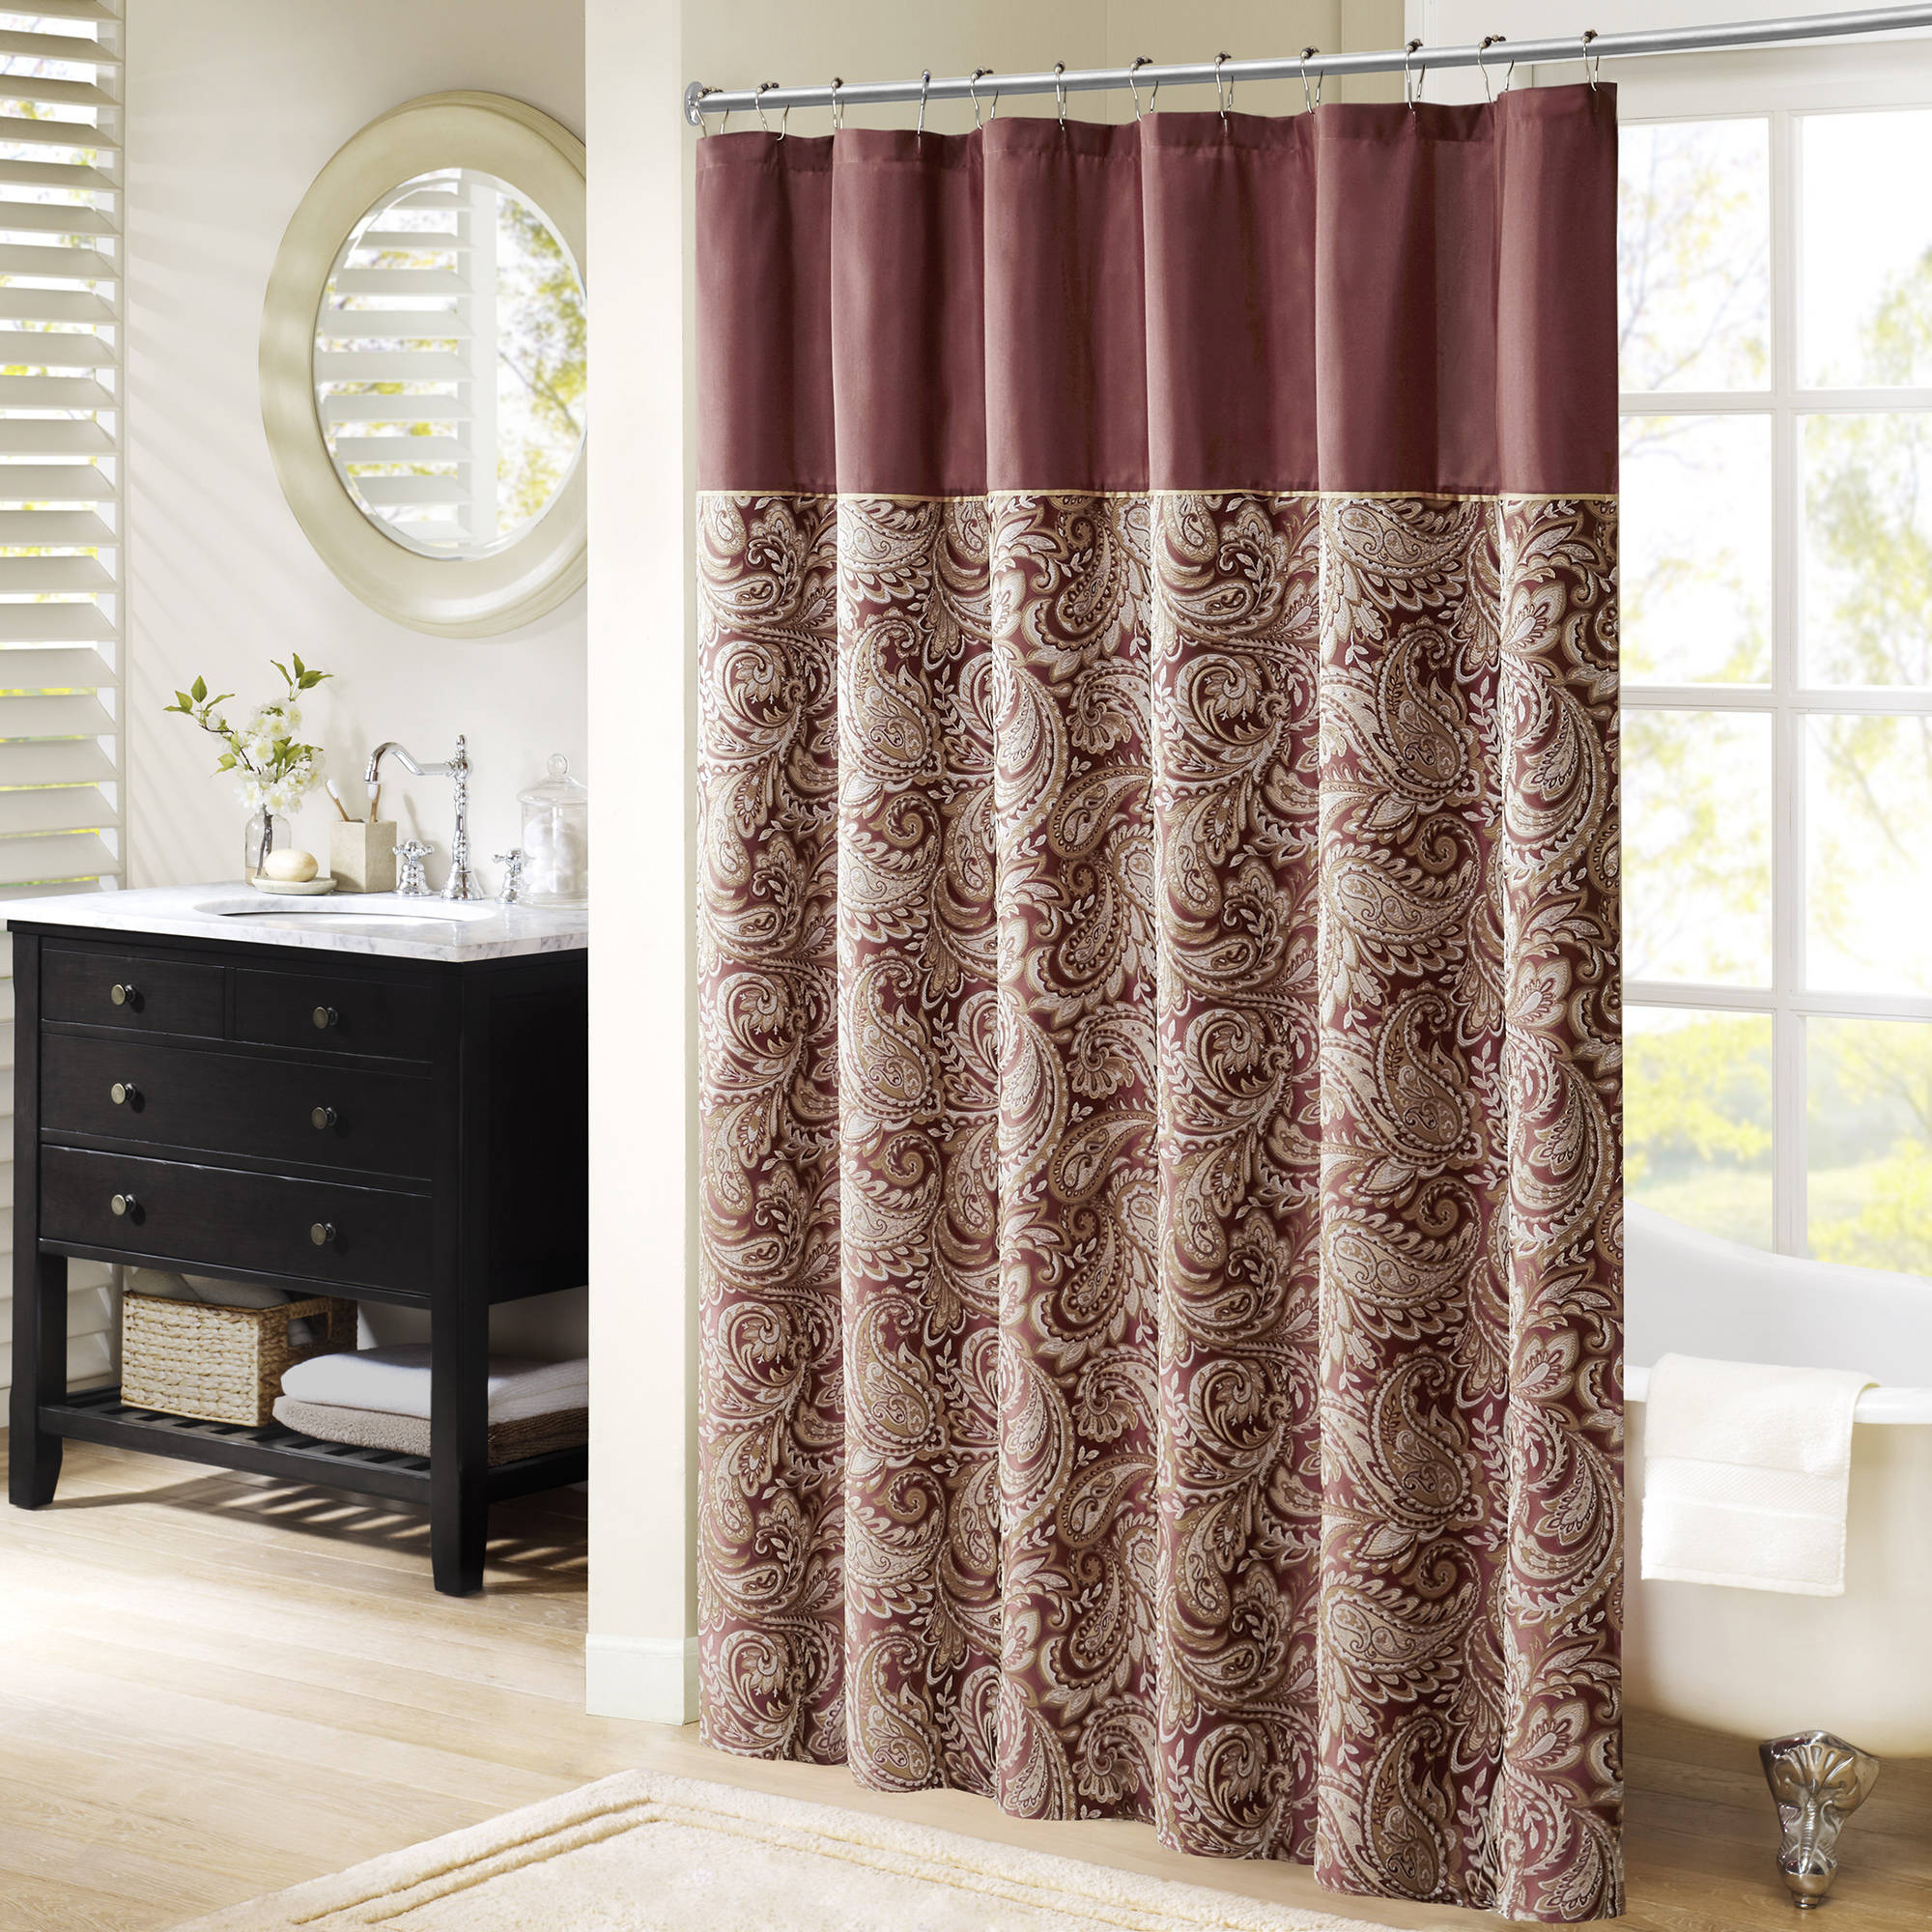 Bathroom curtains from walmart - 85 Above